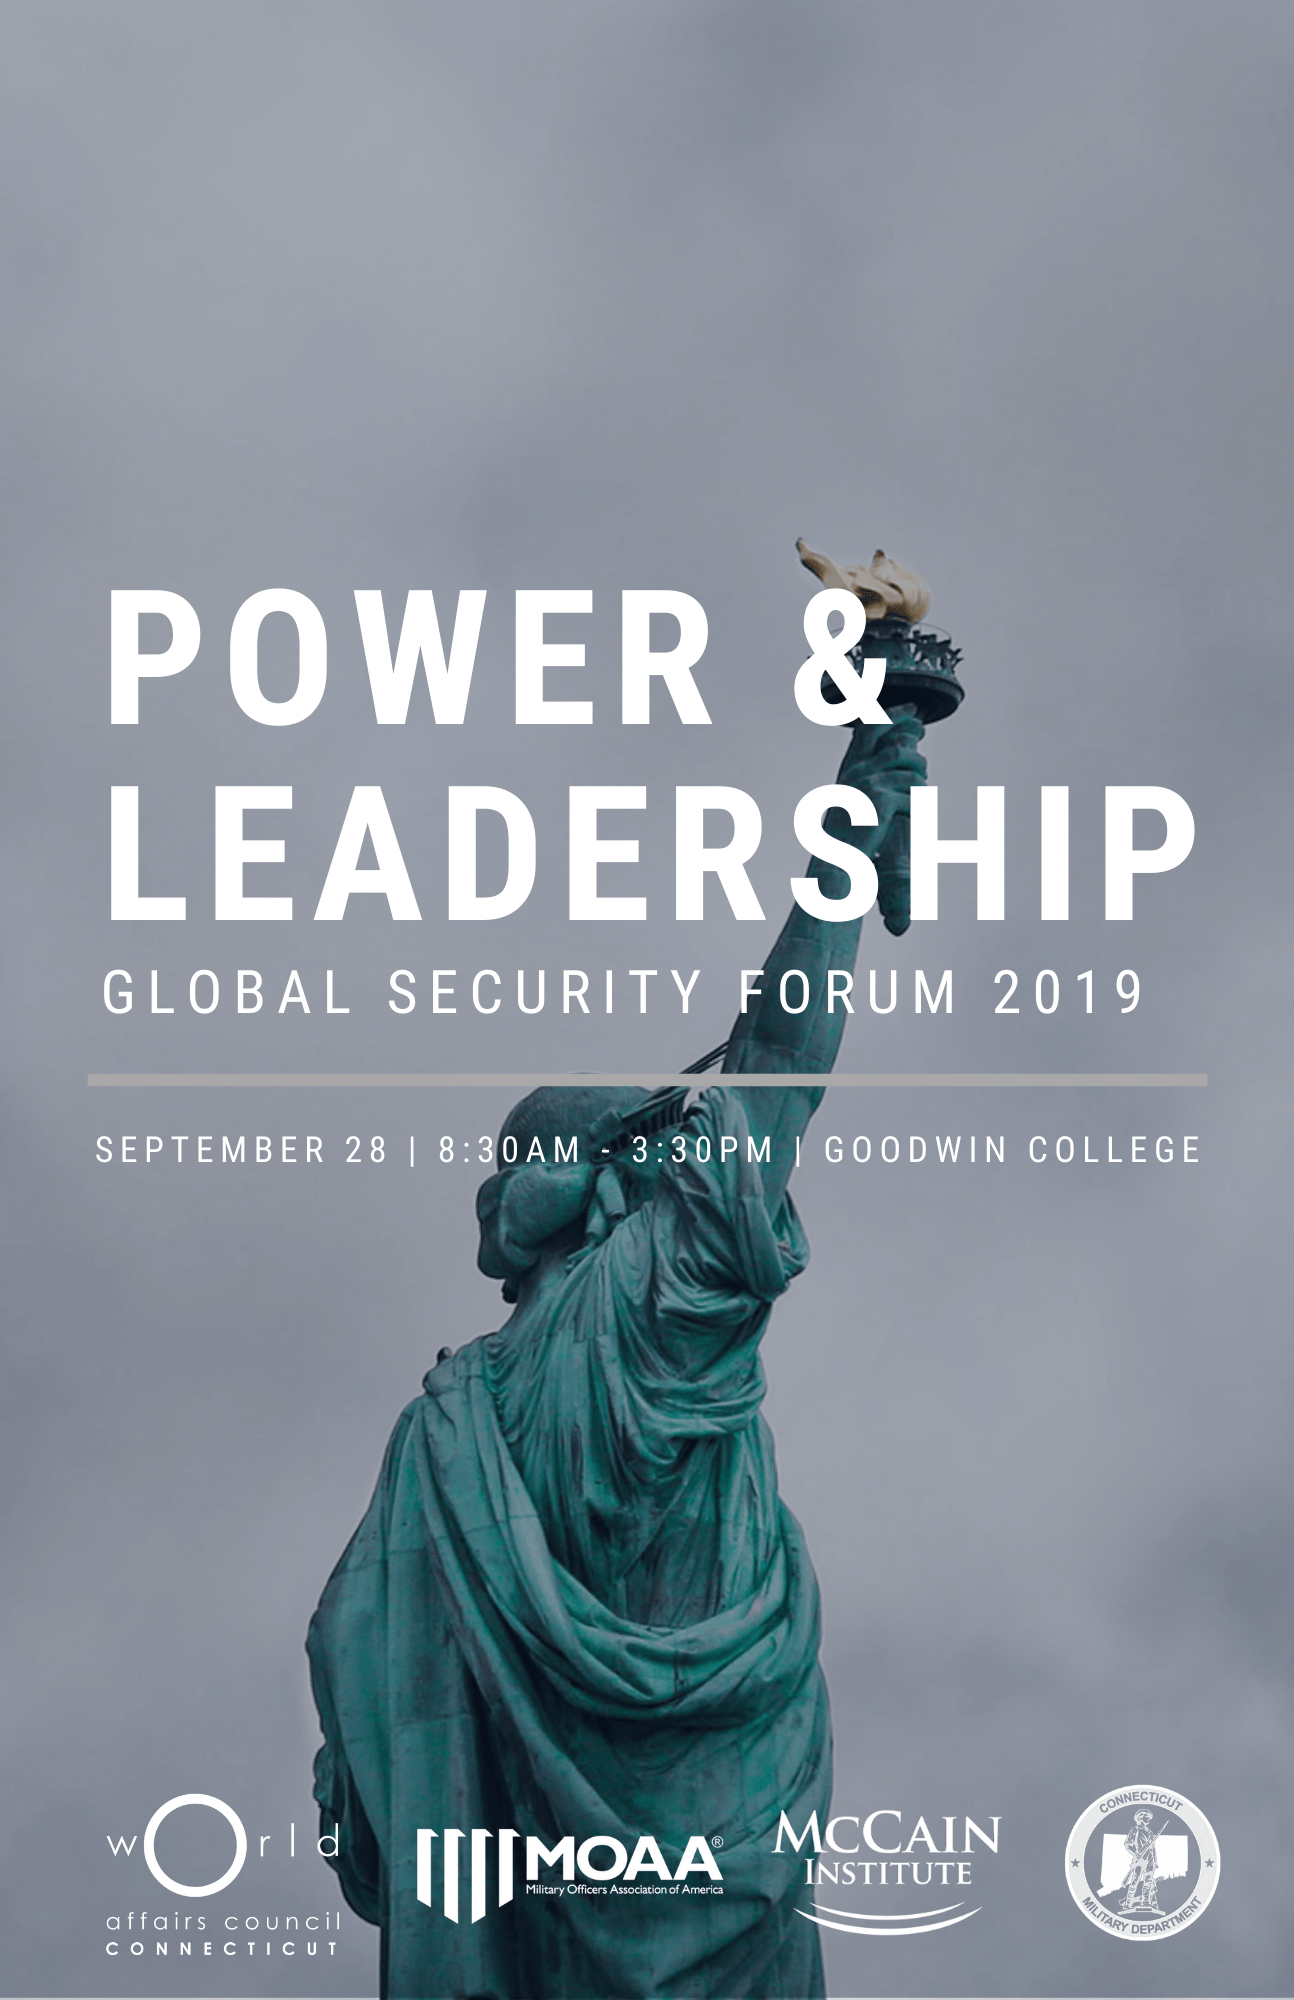 Global Security Forum Program 2019